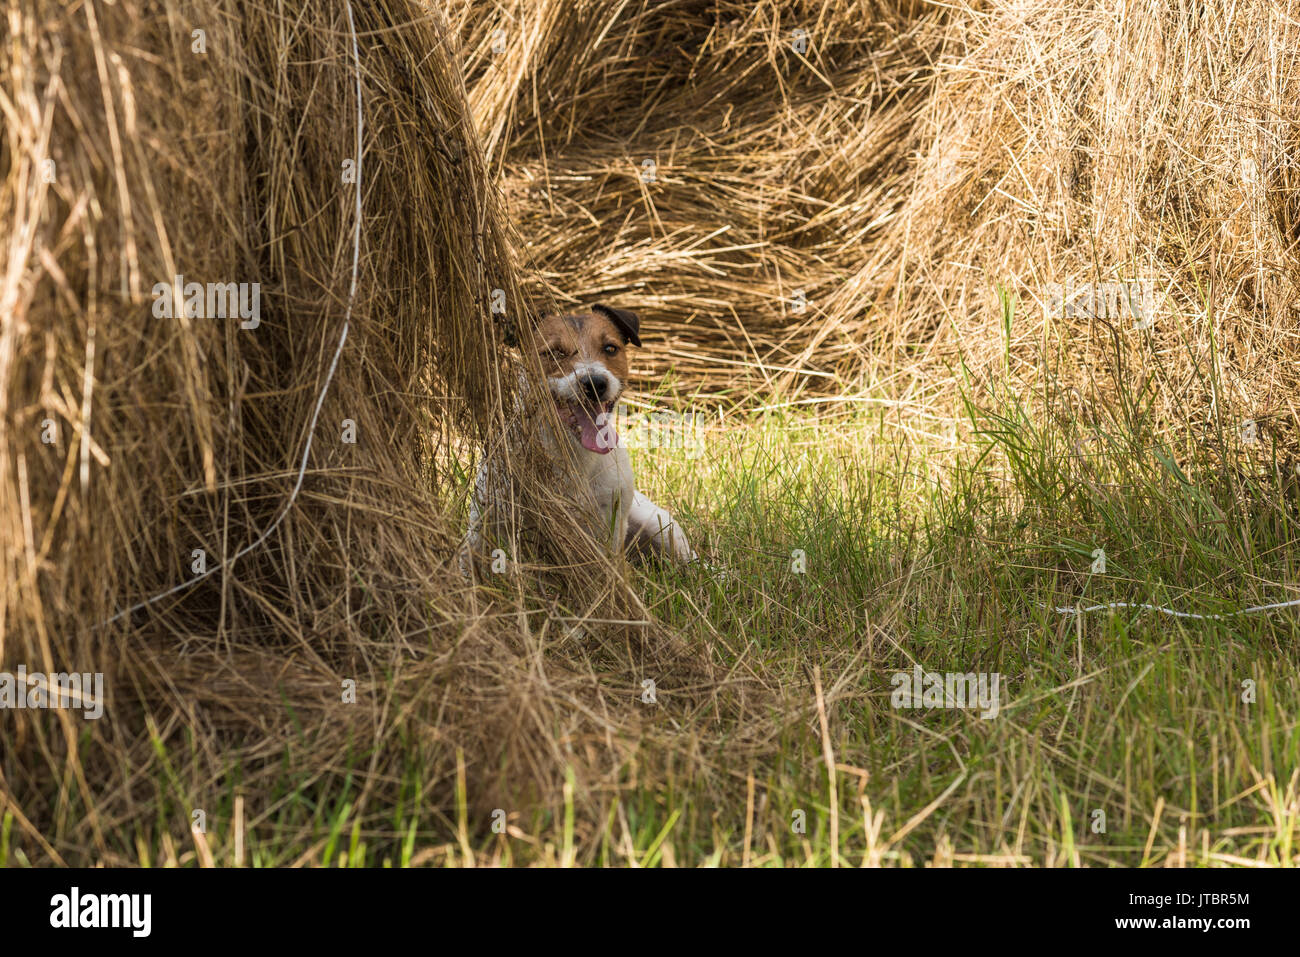 Dog hiding inside haystack playing hide and seek game Stock Photo